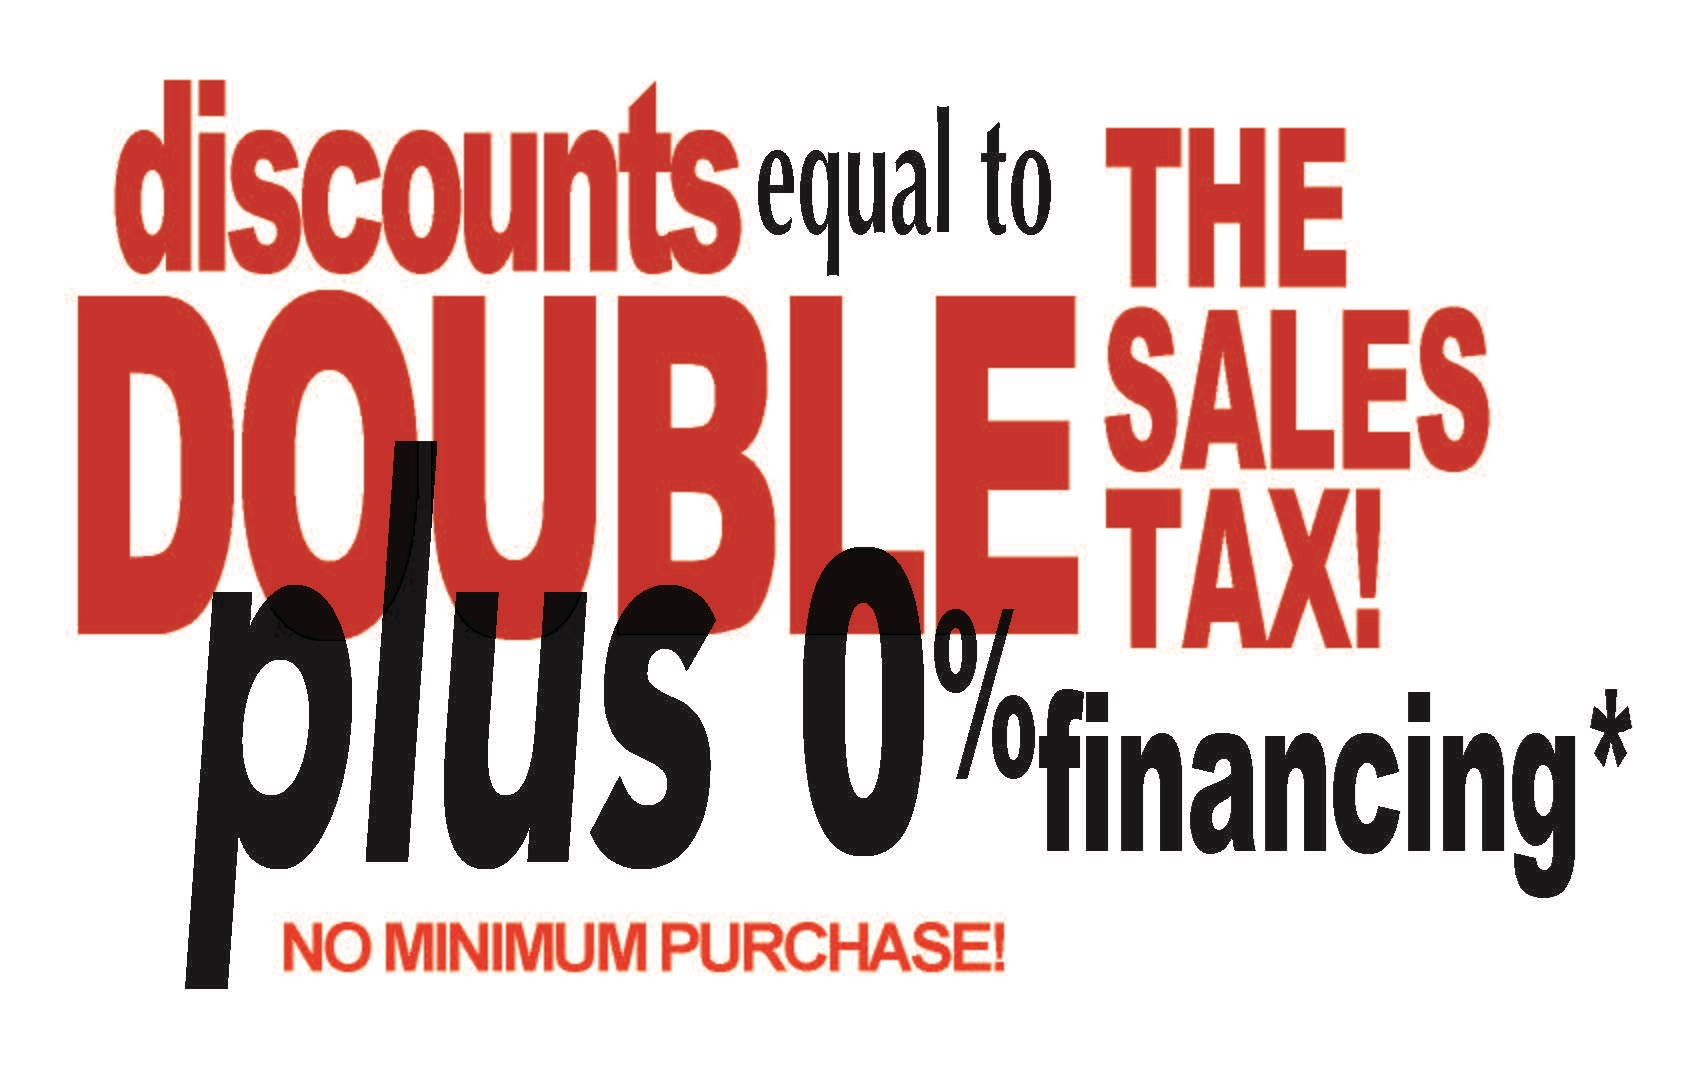 DOUBLE TAX INSTANT DISCOUNTS PLUS 0% FINANCING!